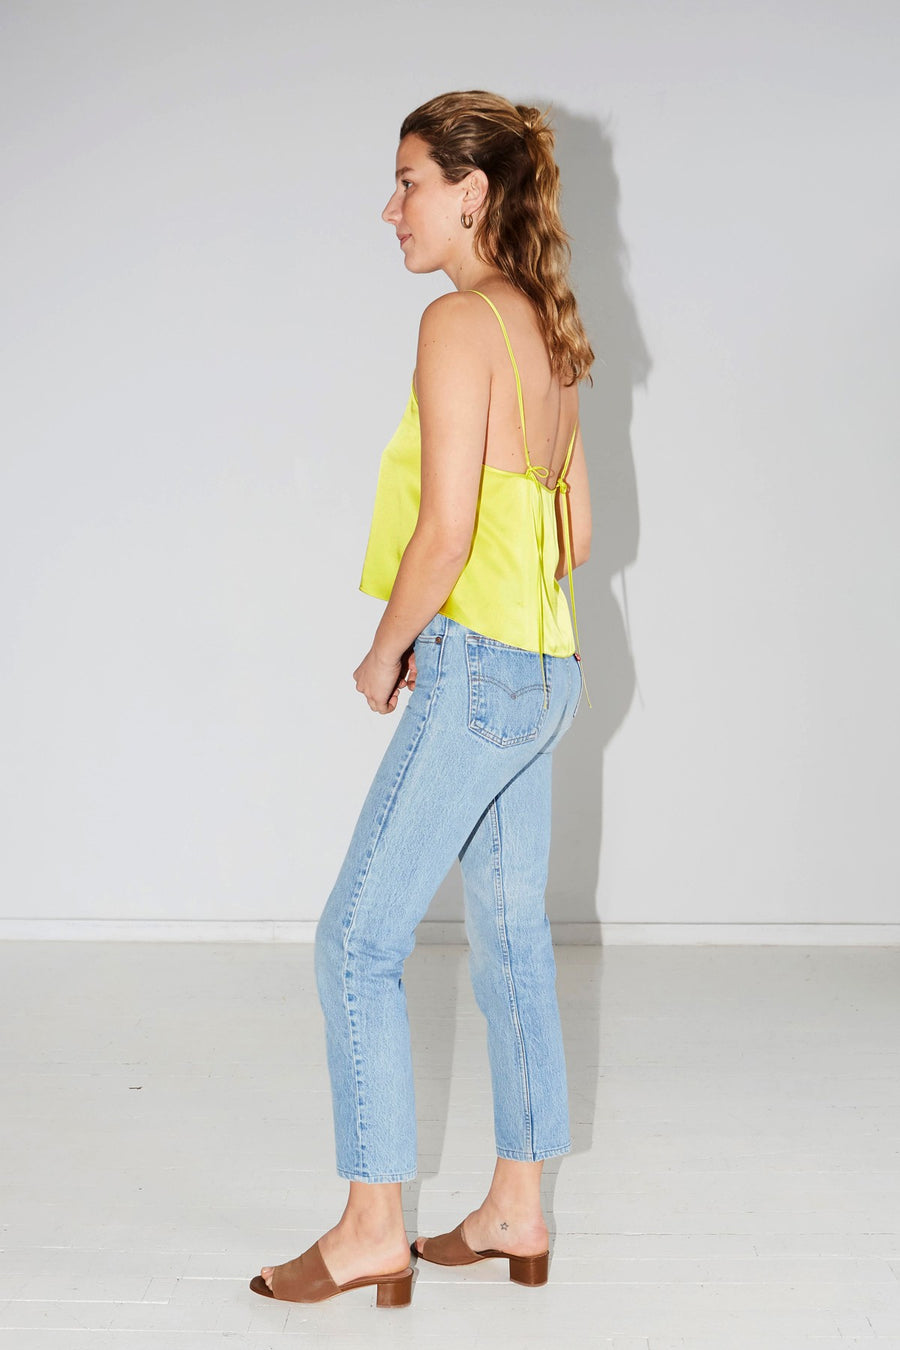 Citron Slip Top